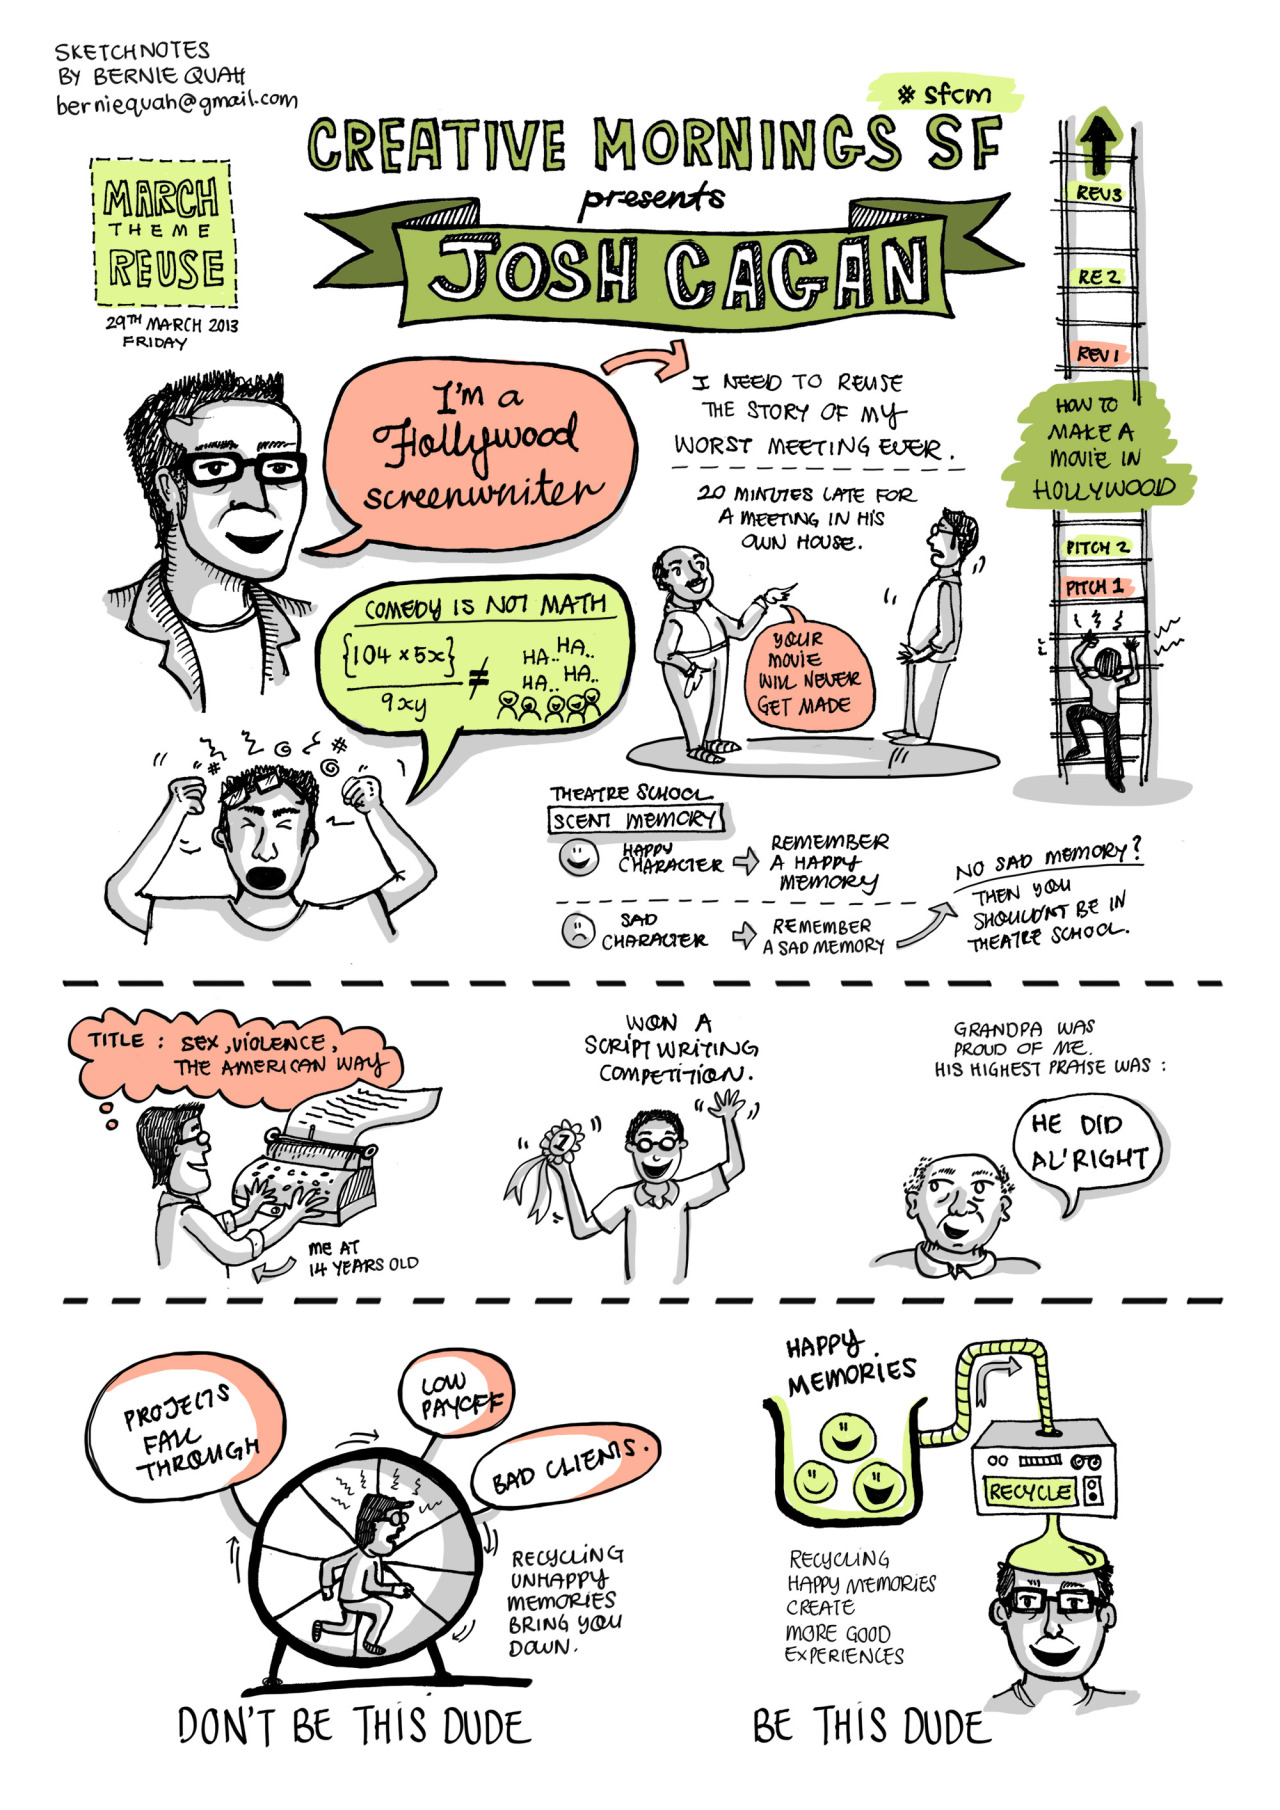 Another round of excellent sketch notes from Bernie Quah on Josh Cagan's talk from March—all about reuse!